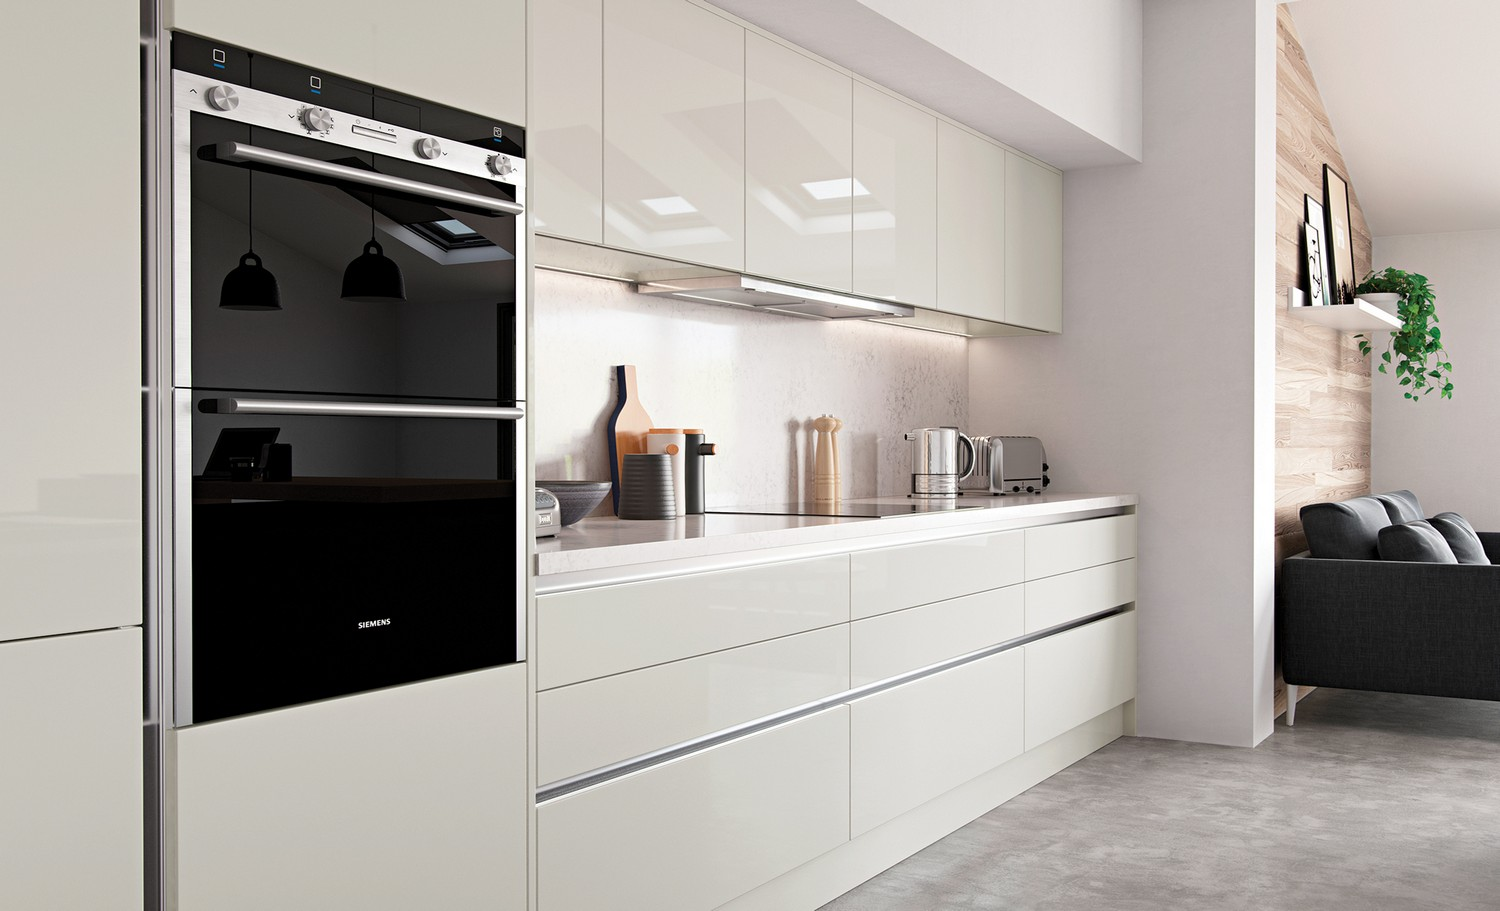 Simple sleek modern handleless porcelain kitchen featuring simple clean lines with a true handleless system. A simple worktop and back splash, integrated appliances and hidden extractor fan add to the streamline look of this system.